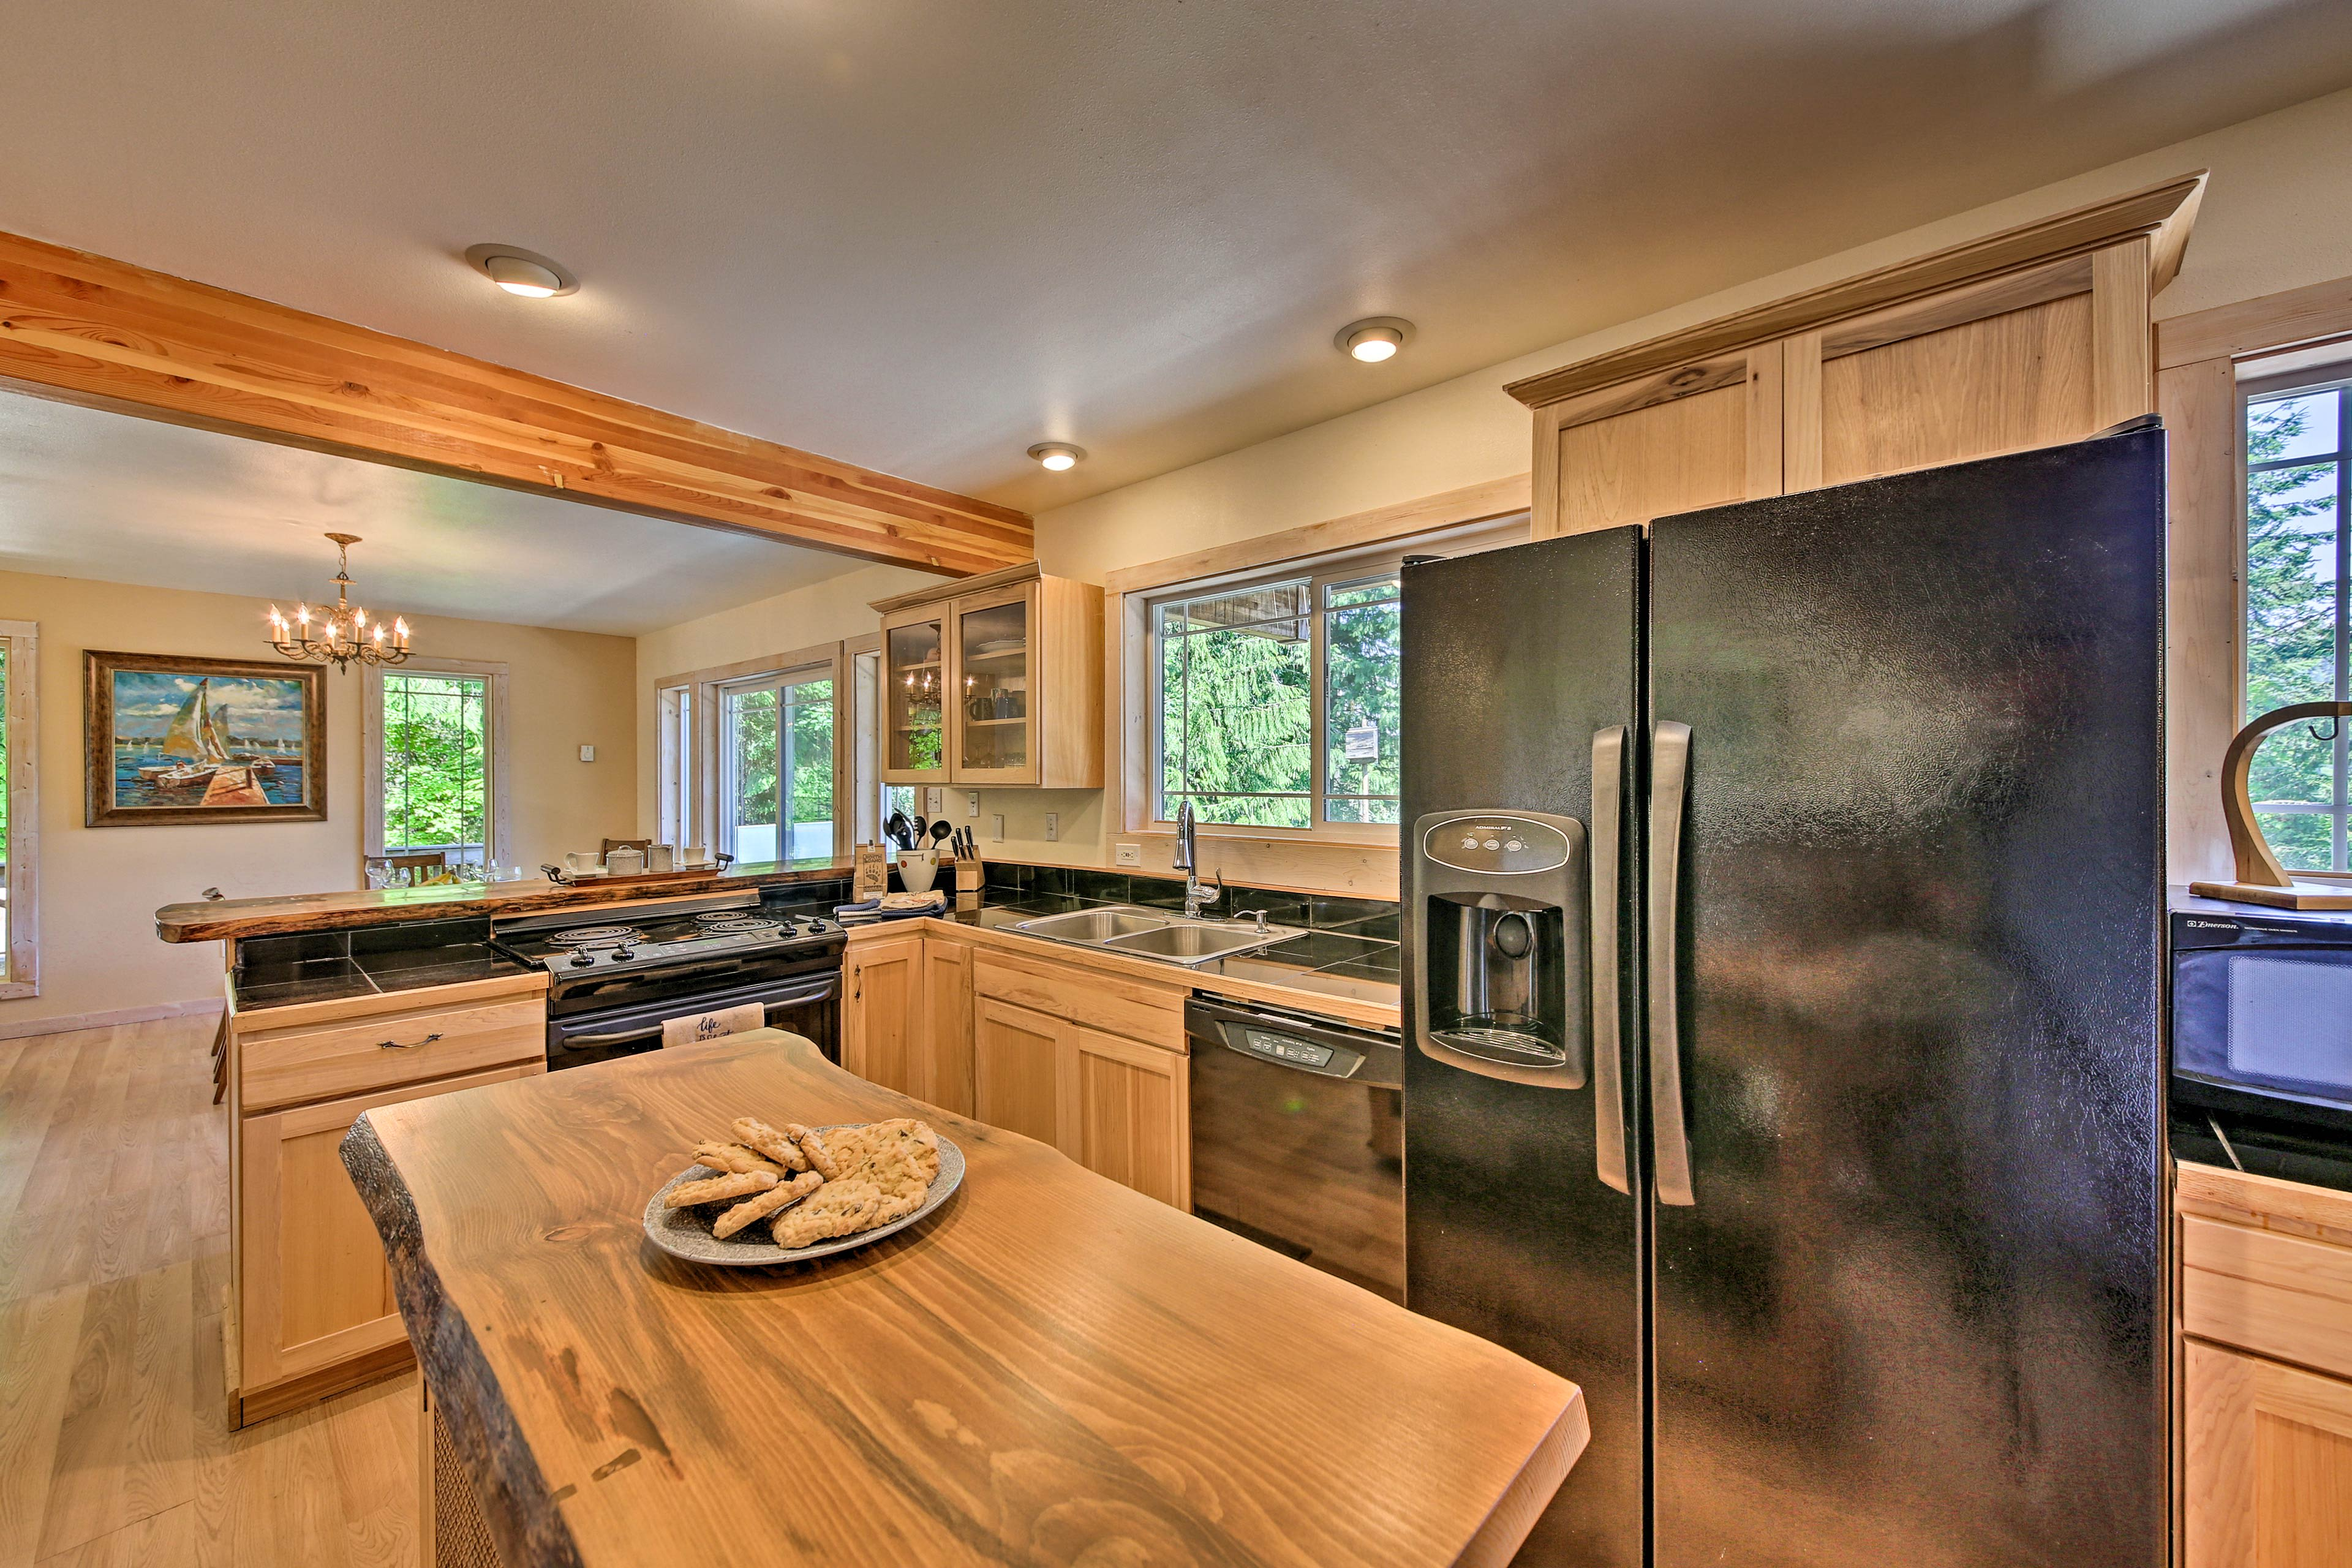 Use the fully equipped kitchen to whip up your favorite recipes.